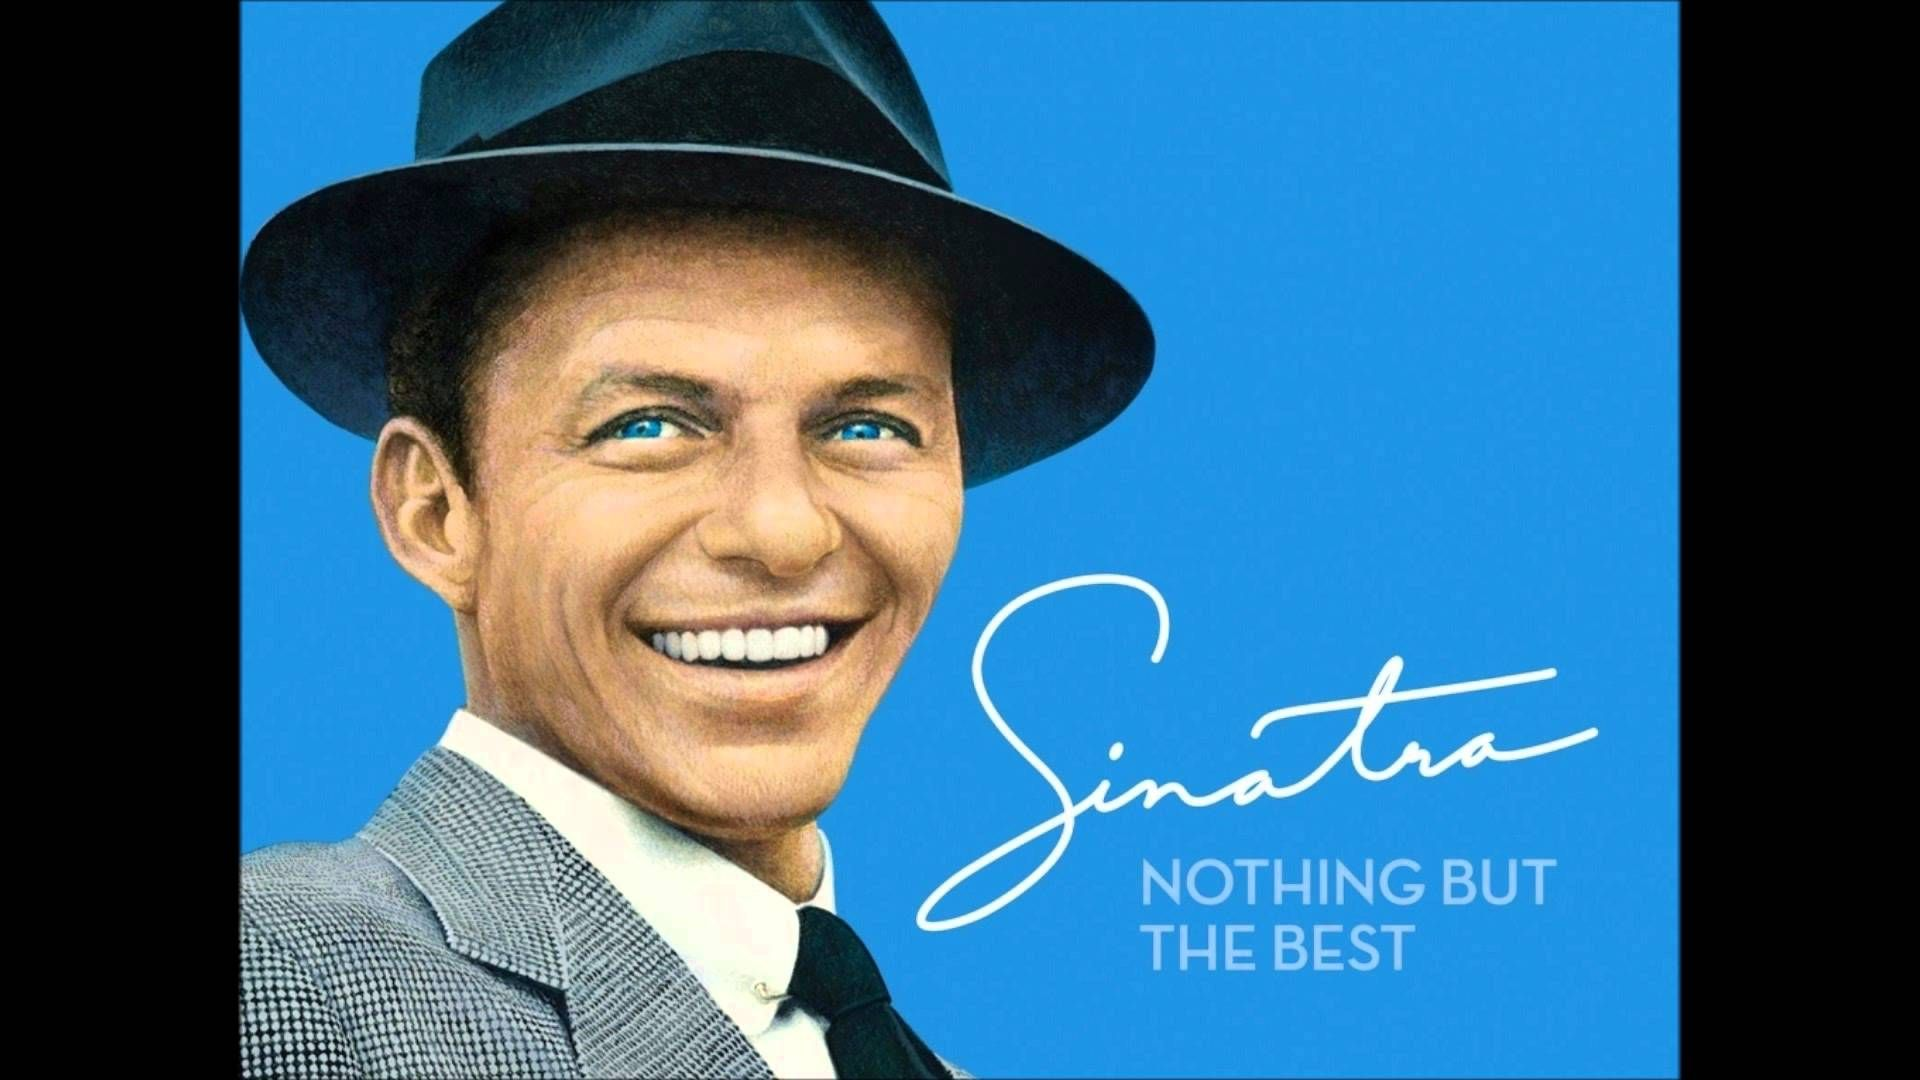 Frank Sinatra The Way You Look Tonight I Can T Even Begin To Describe How Much I Love Sinatra Frank Sinatra Sinatra Father Daughter Dance Songs